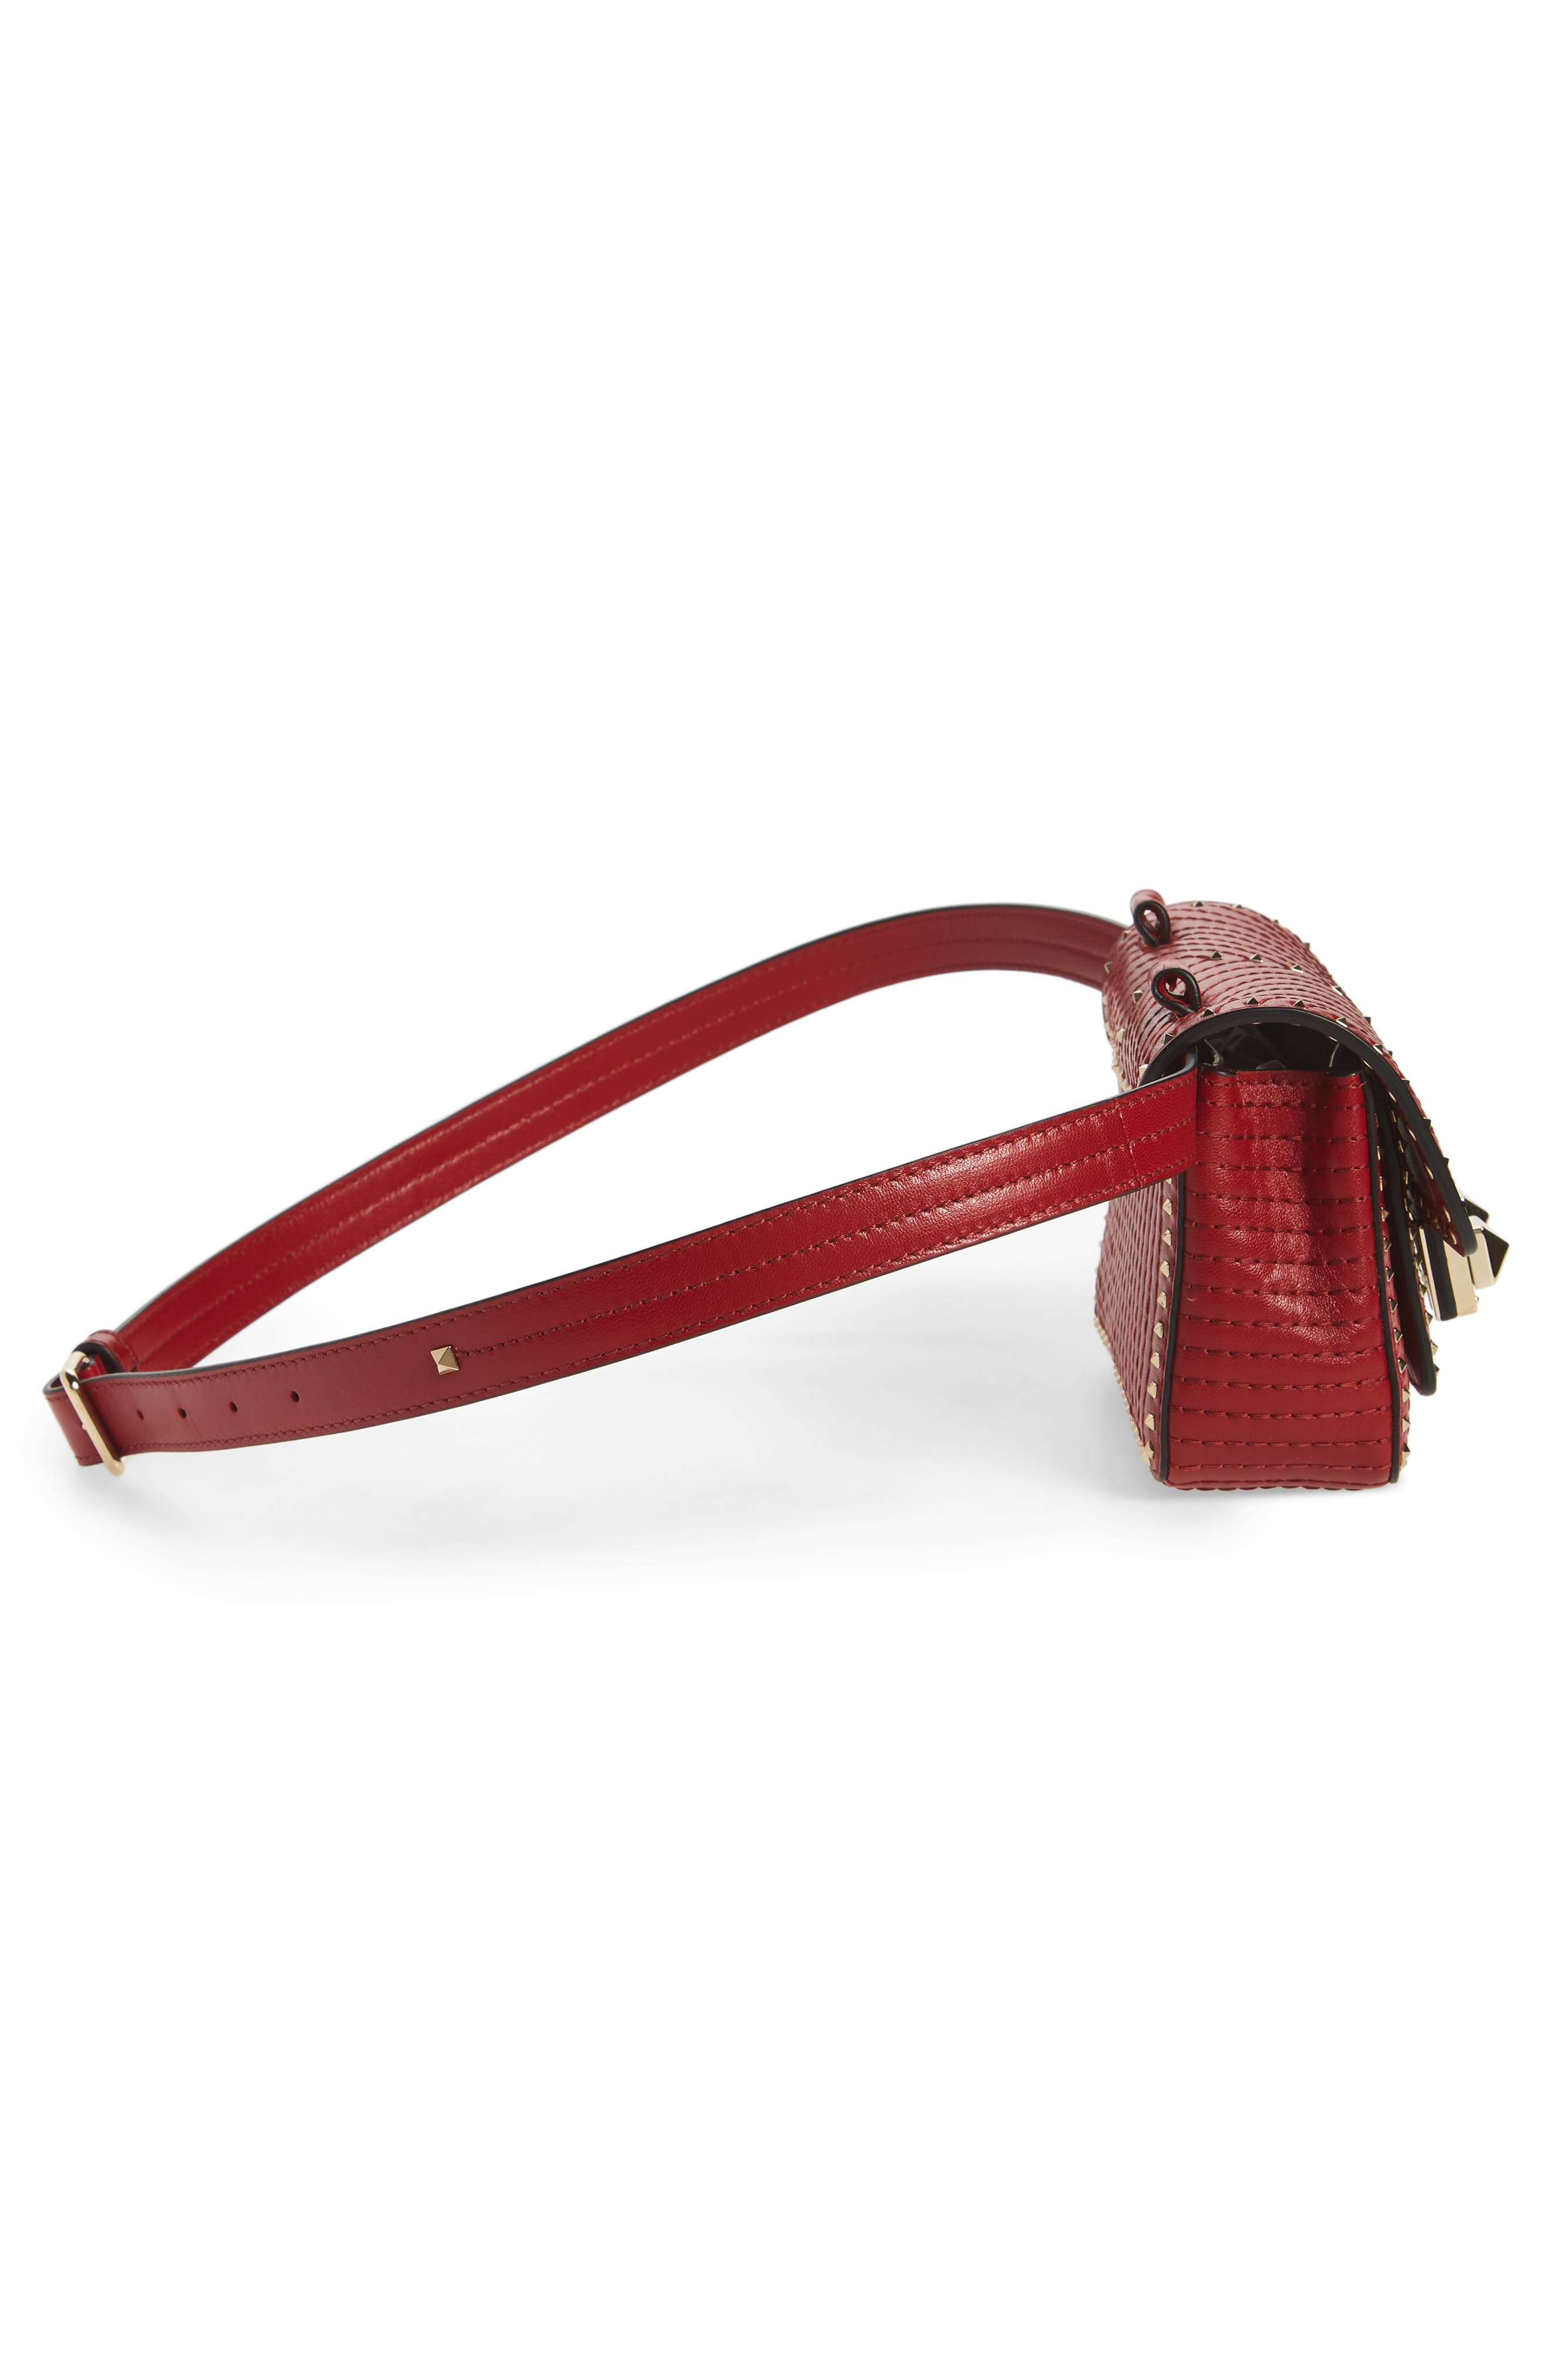 Mini Ziggystud Leather Convertible Crossbody/Belt Bag,                             Alternate thumbnail 7, color,                             Rosso